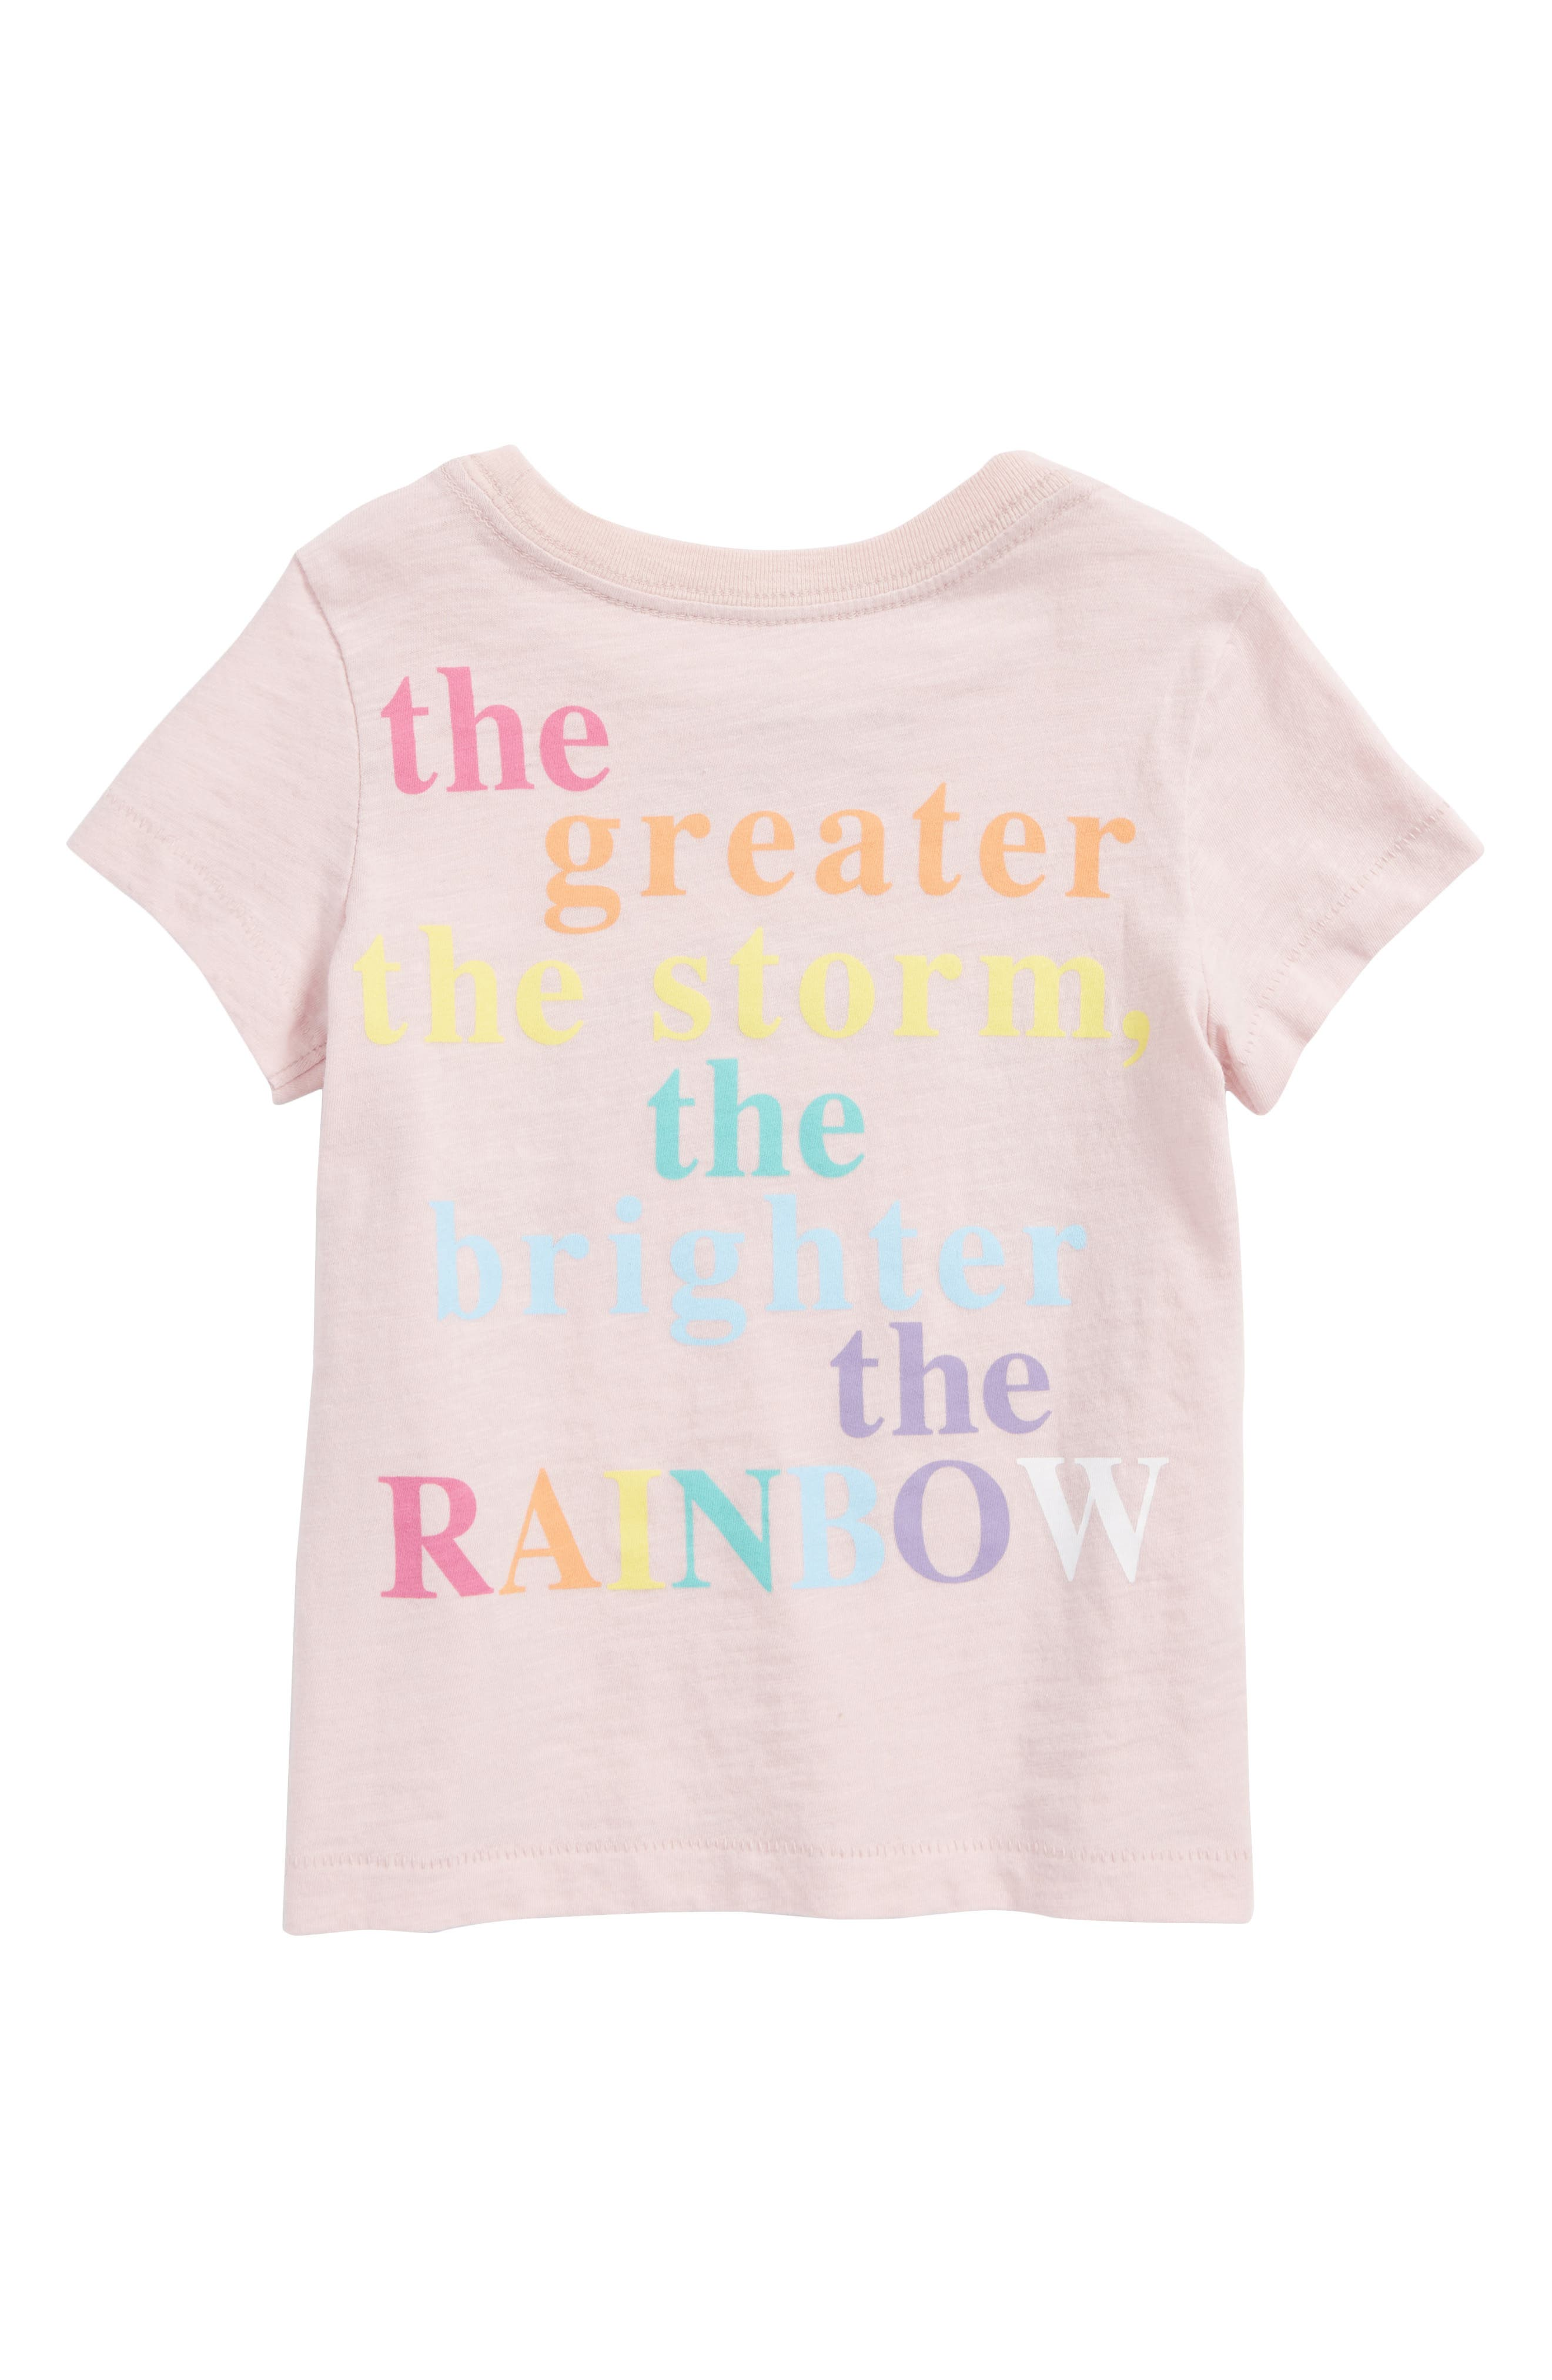 Rainbow Graphic Tee,                             Alternate thumbnail 2, color,                             Light Pink